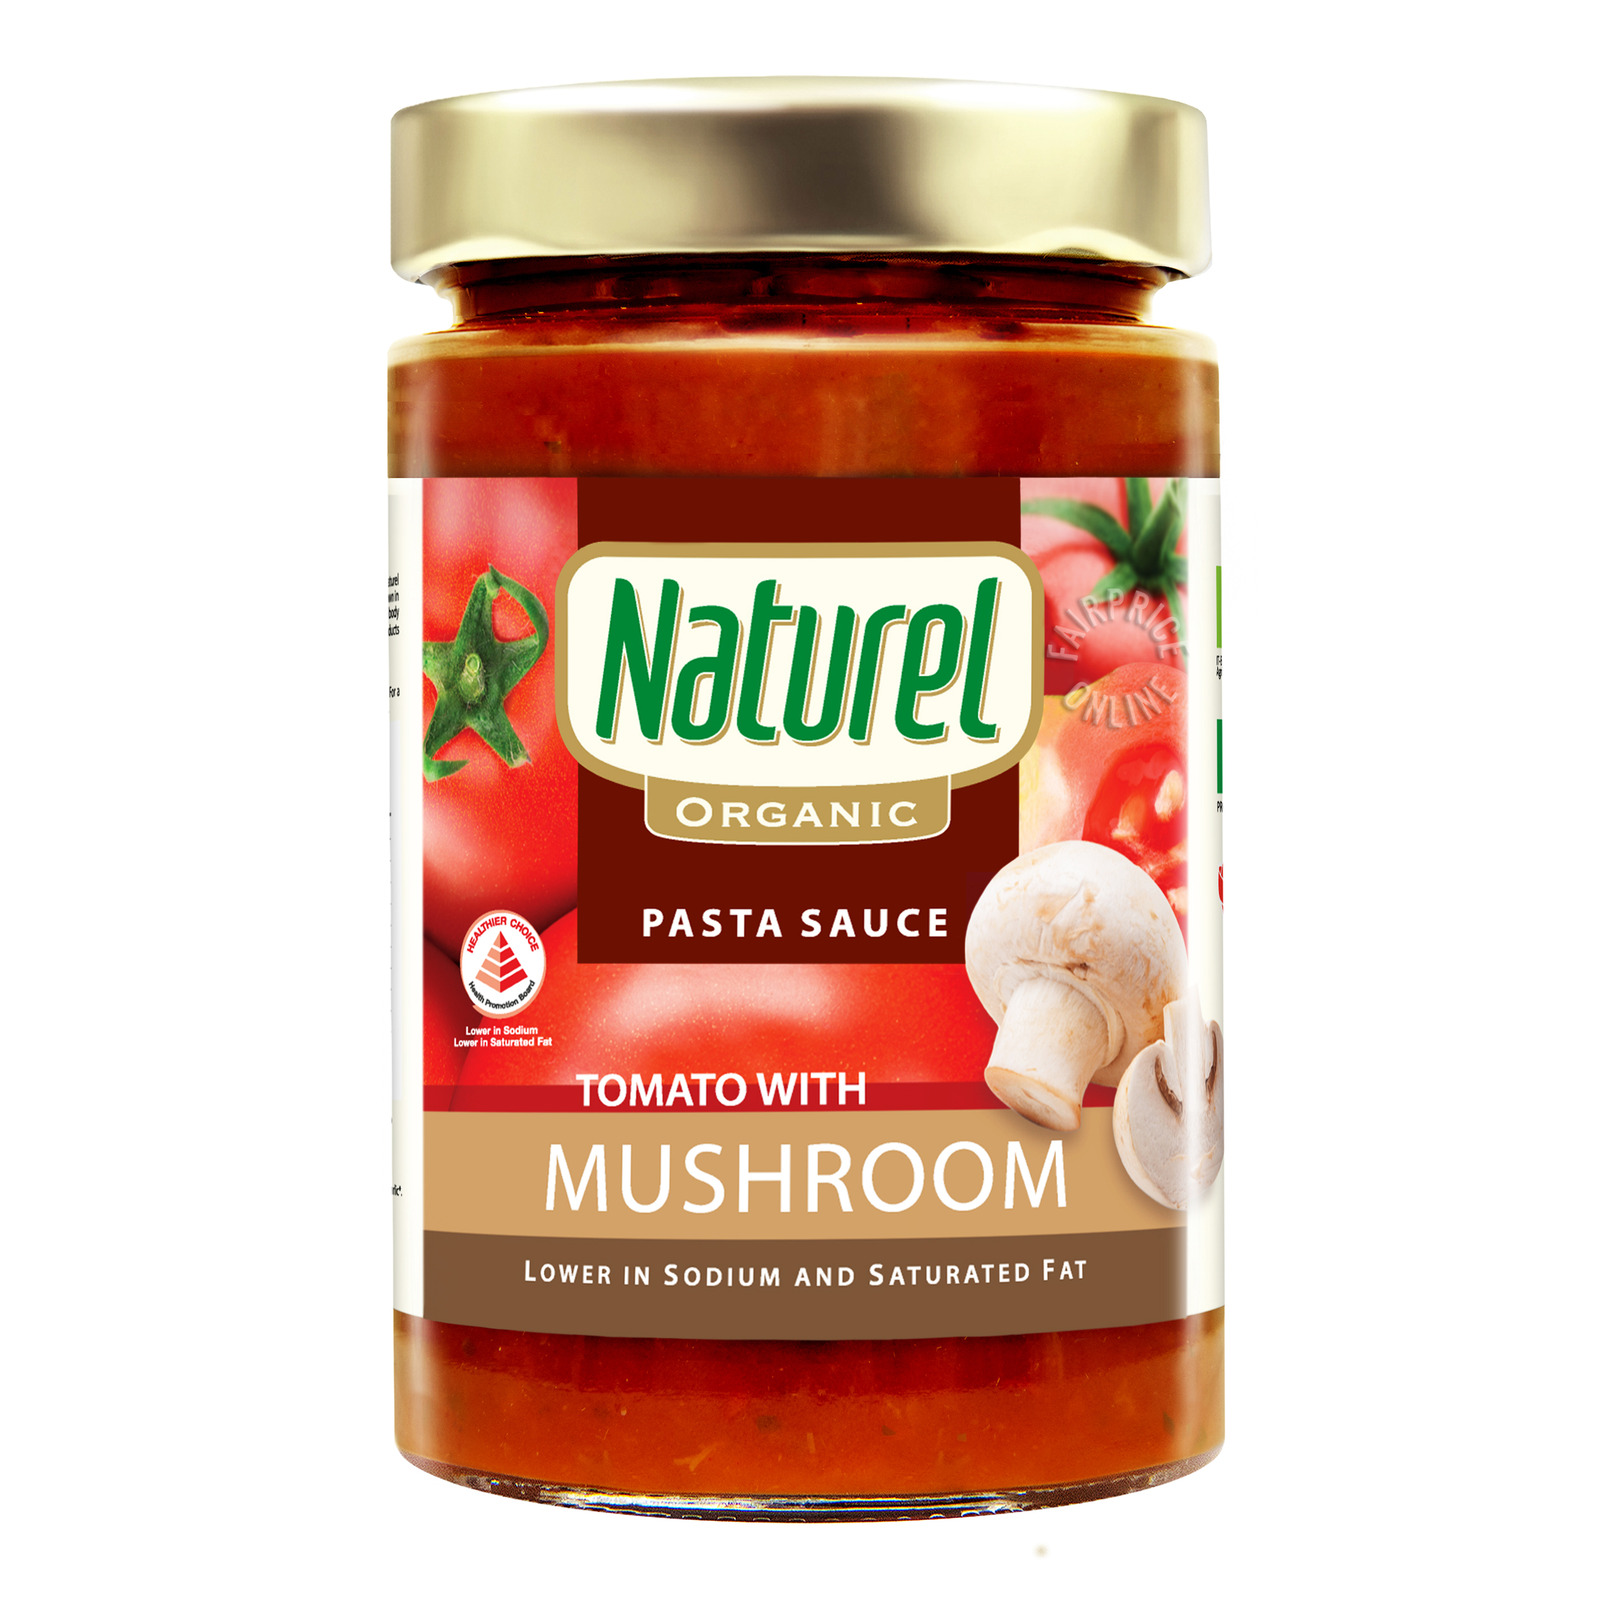 Naturel Organic Pasta Sauce - Tomato with Mushroom